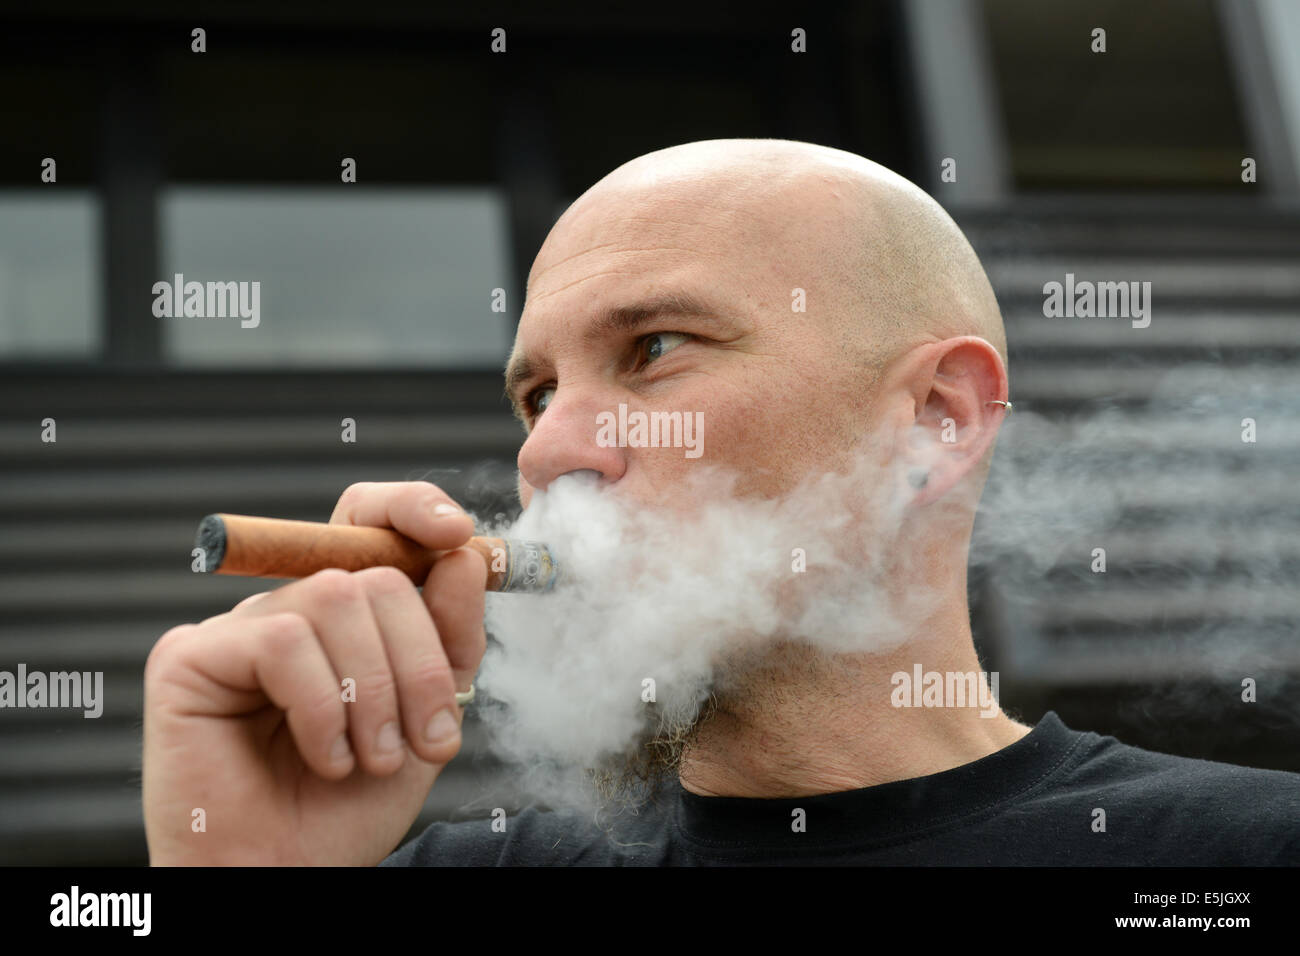 Ross Wareham of Dublin puffs on his cigar style vapouriser at the 2nd annual Vapour Festival. Credit:  David Bagnall/Alamy - Stock Image